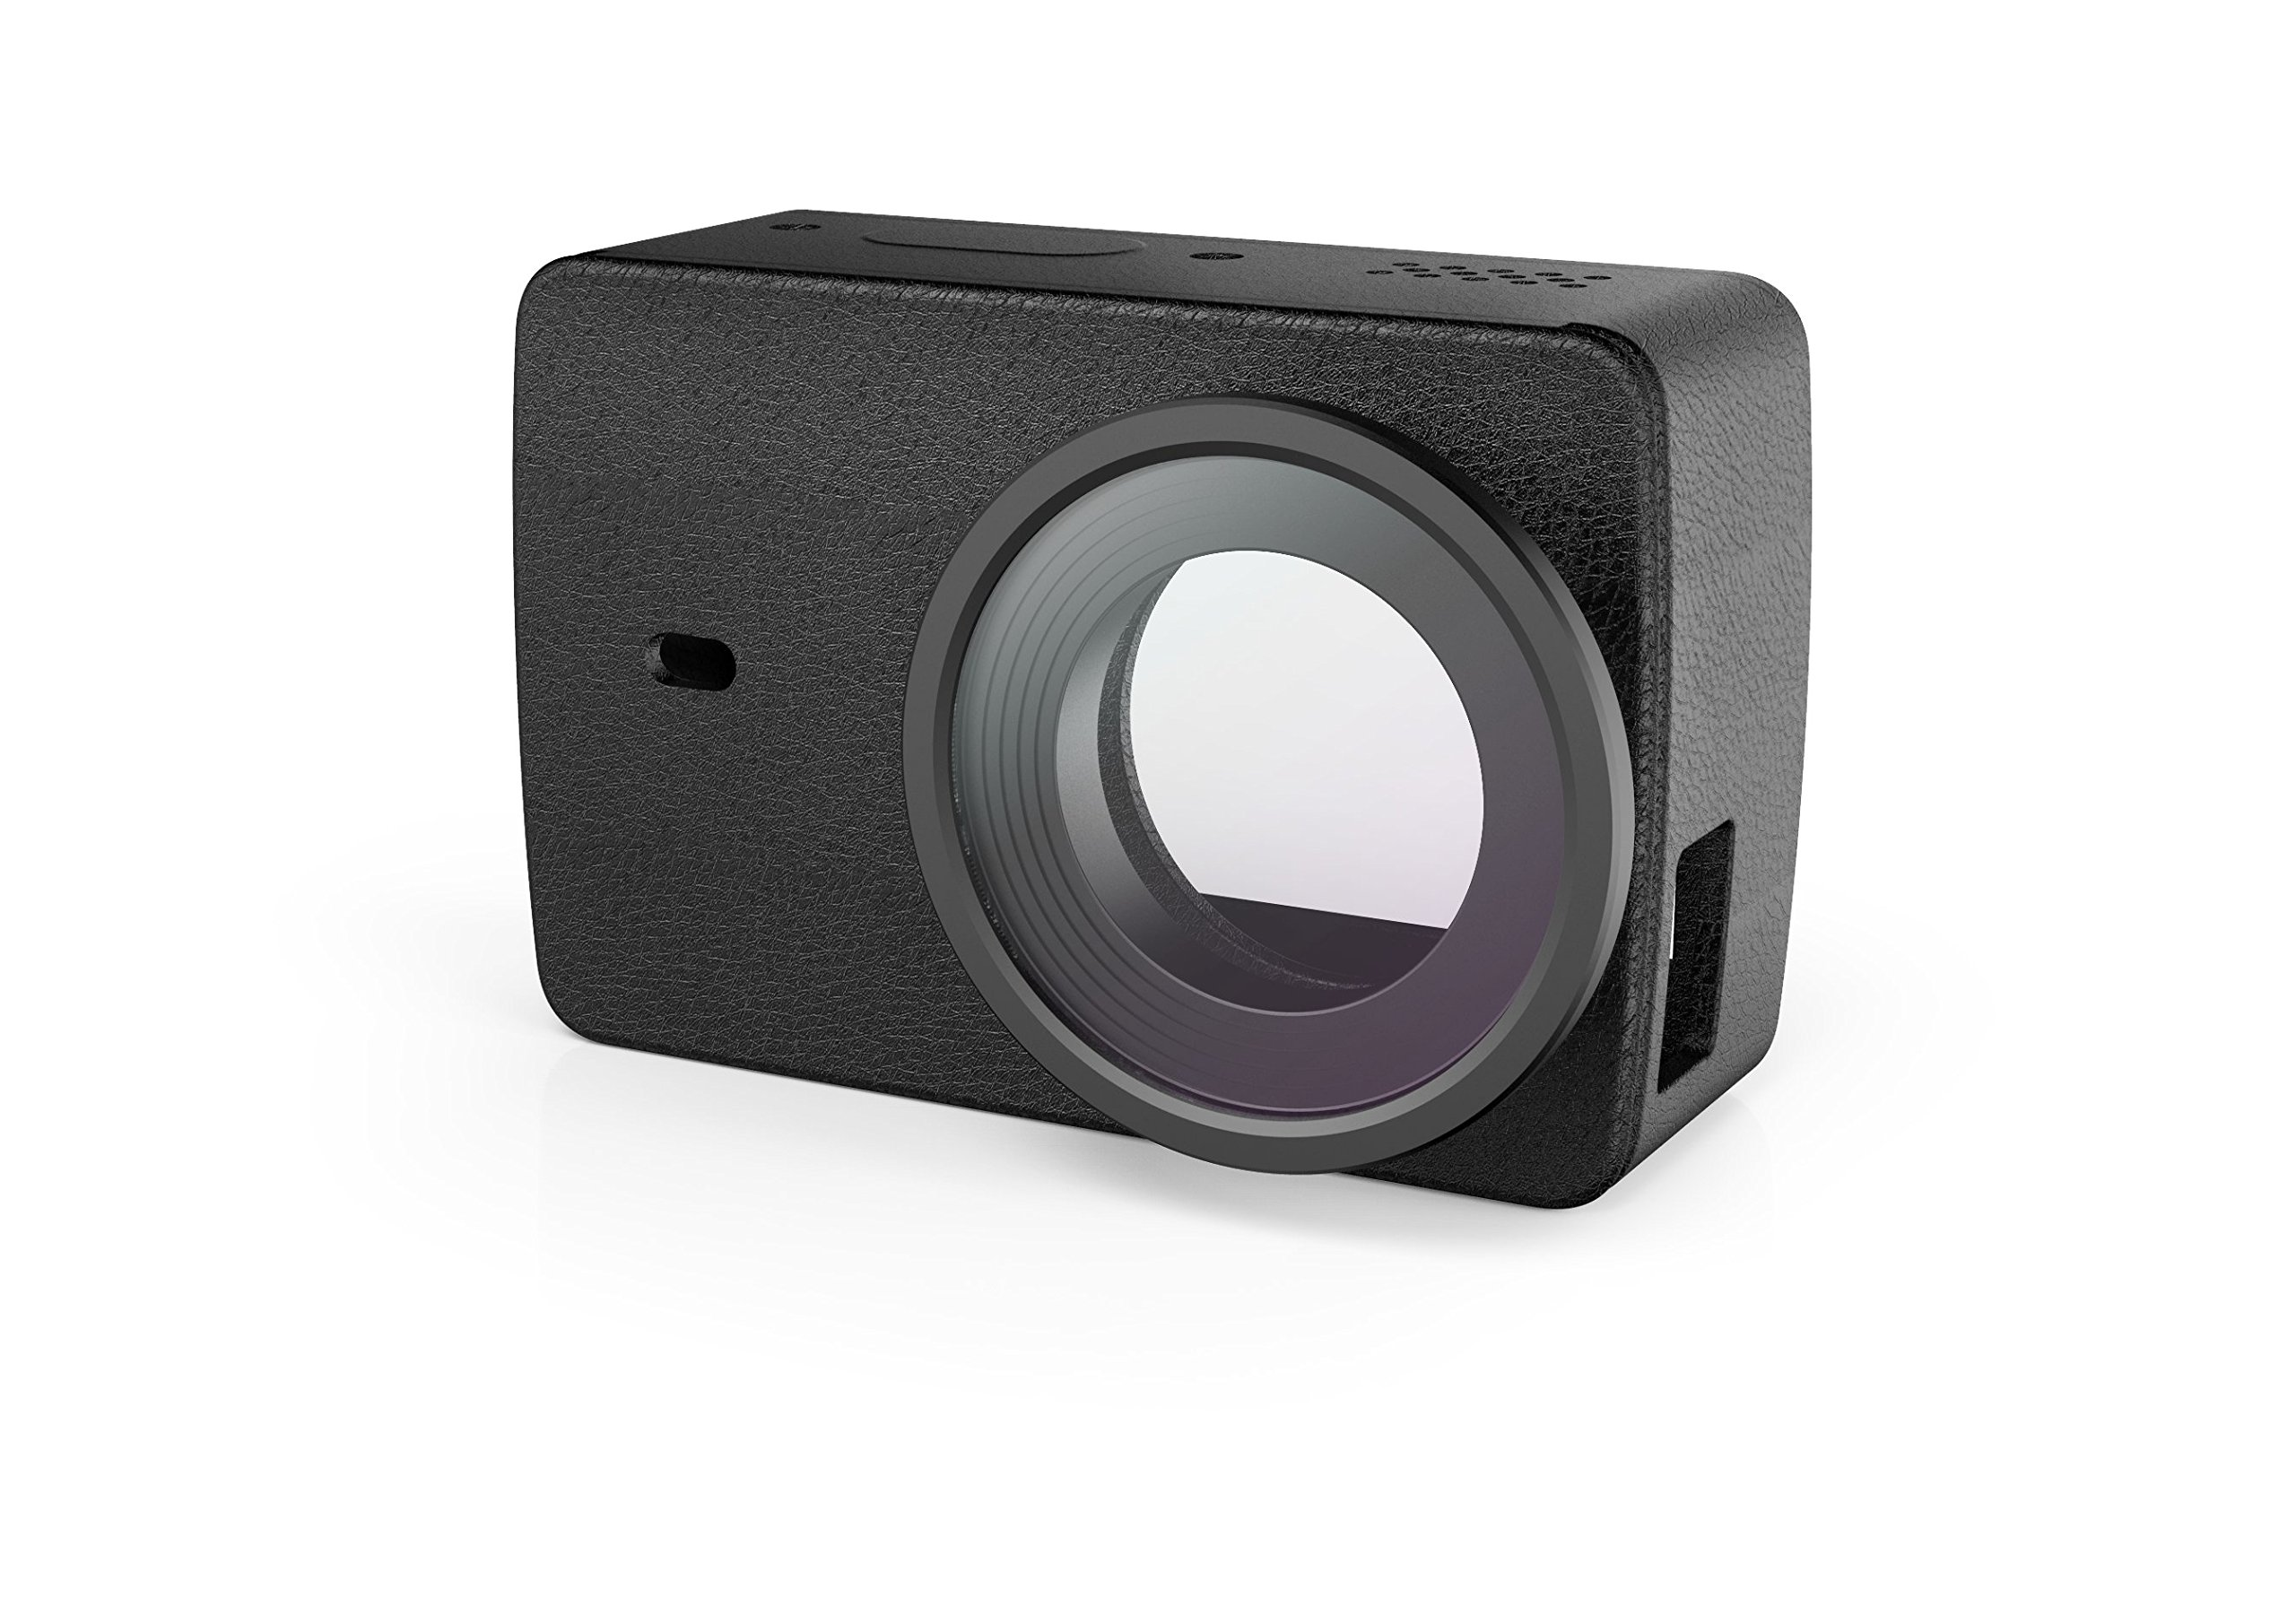 YI 4K Action Camera Protective Lens + Leather Case Black by YI